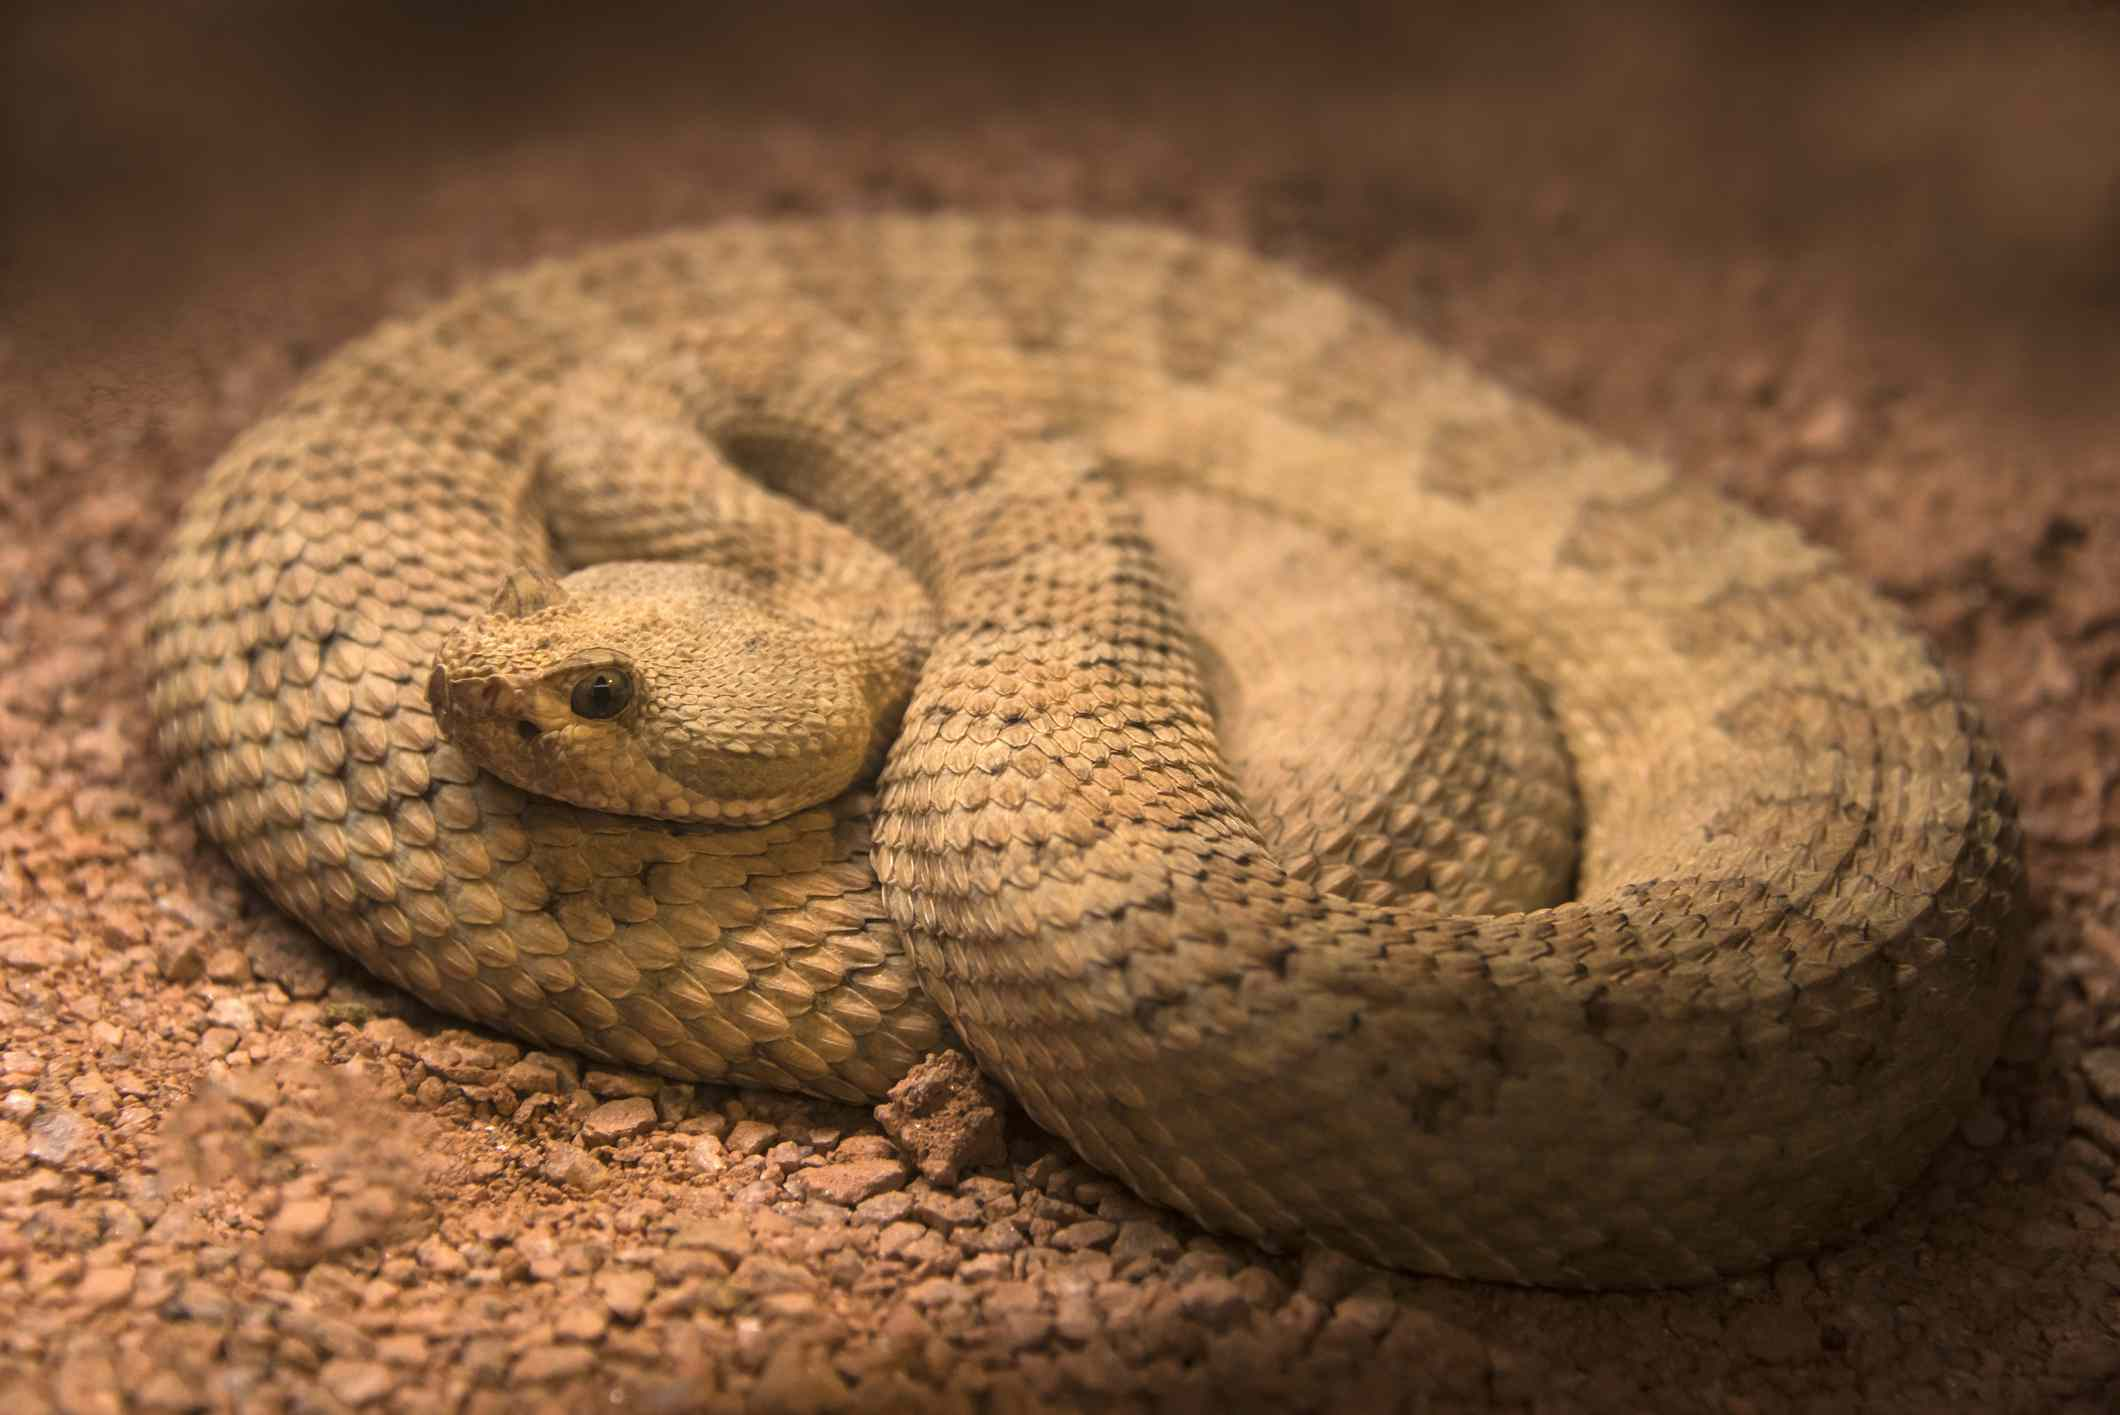 The Grand Canyon pink rattlesnake is only found inside Grand Canyon National Park